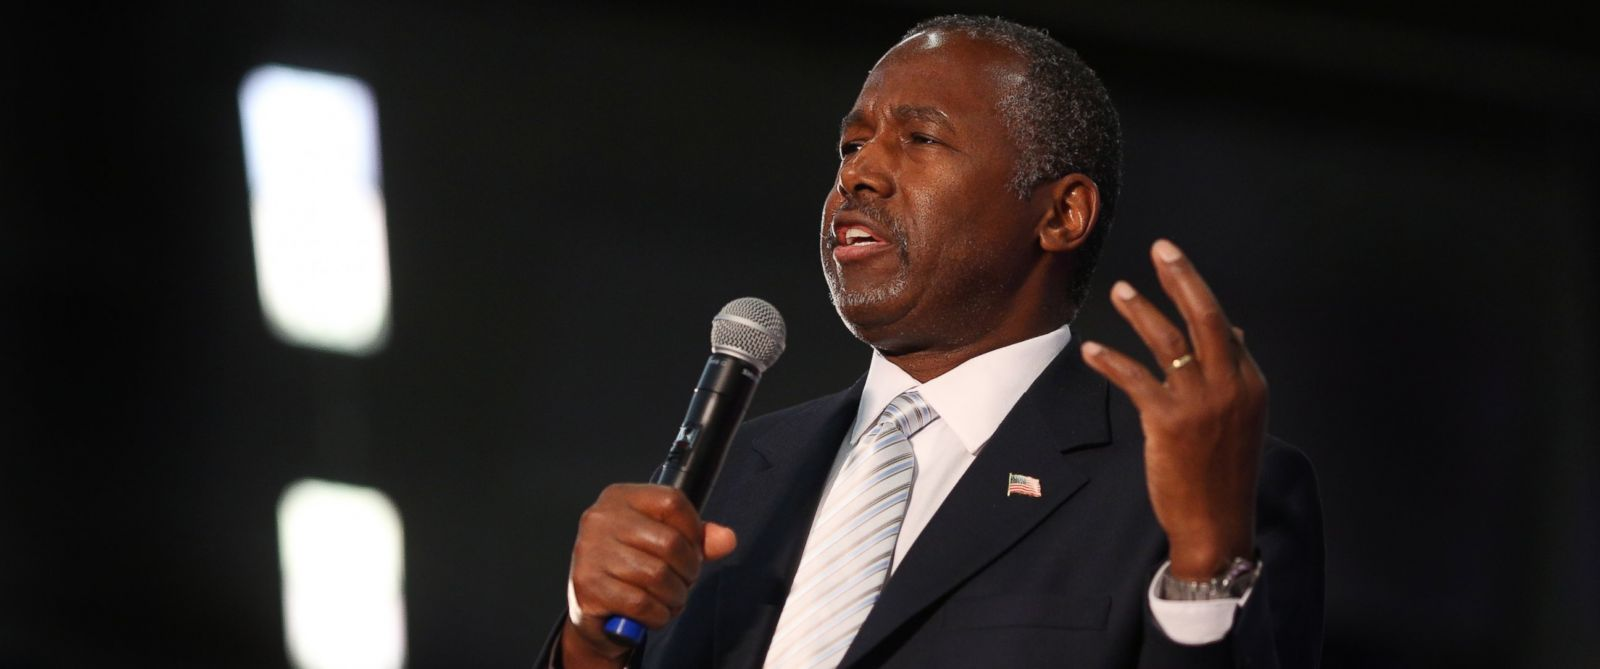 PHOTO: Ben Carson, 2016 Republican presidential candidate, speaks during a rally at Spring Arbor University in Spring Arbor, Michigan on Sept. 23, 2015.